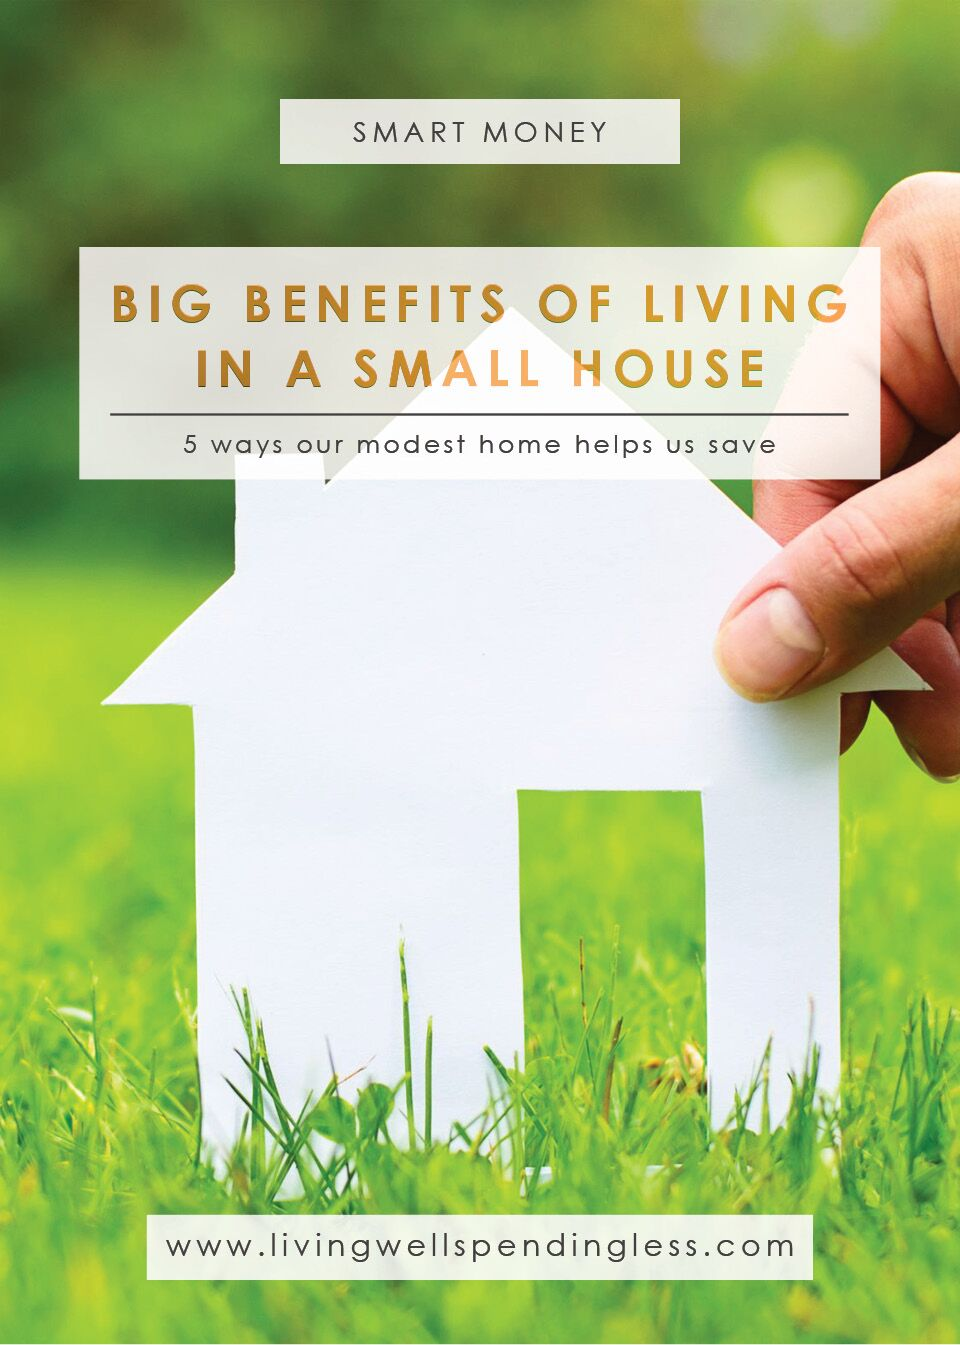 Benefits of Living in a Small House |Home Decorating | Money Saving Tips | Small House Big Savings